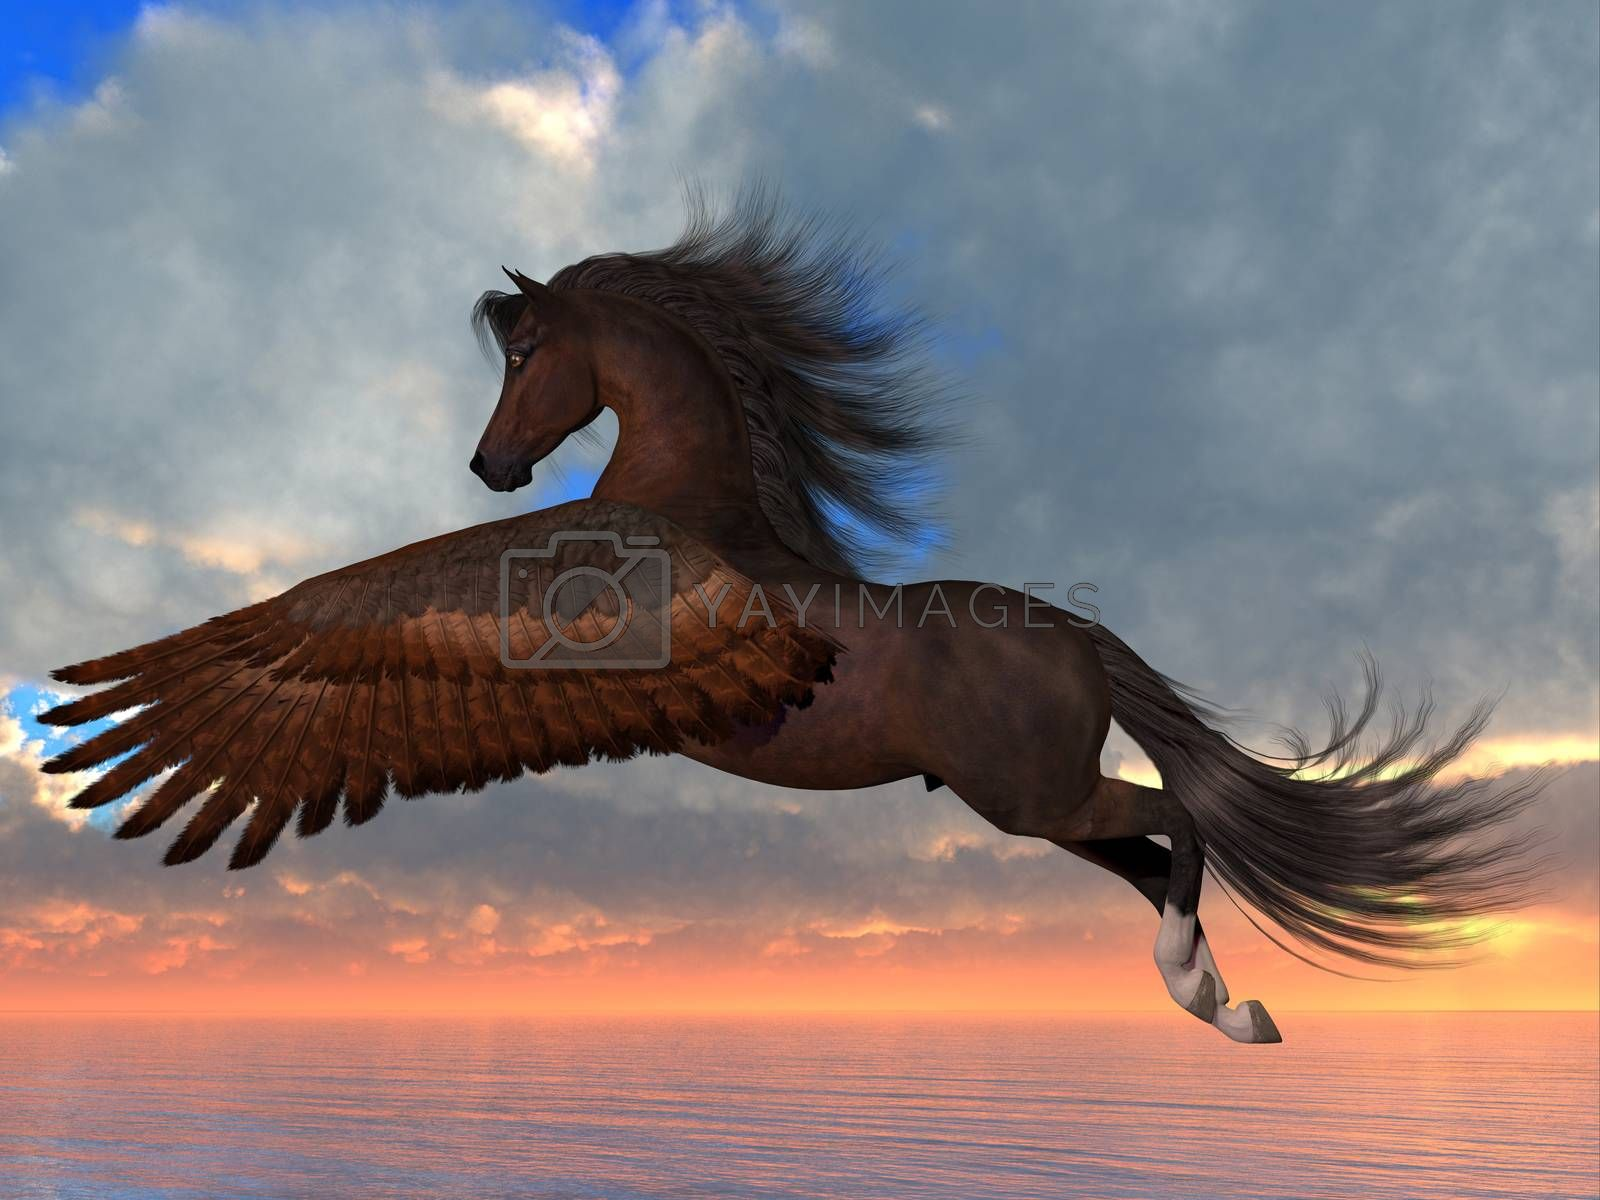 An Arabian Pegasus horse flies over the ocean with powerful wing beats on his way to his destination.